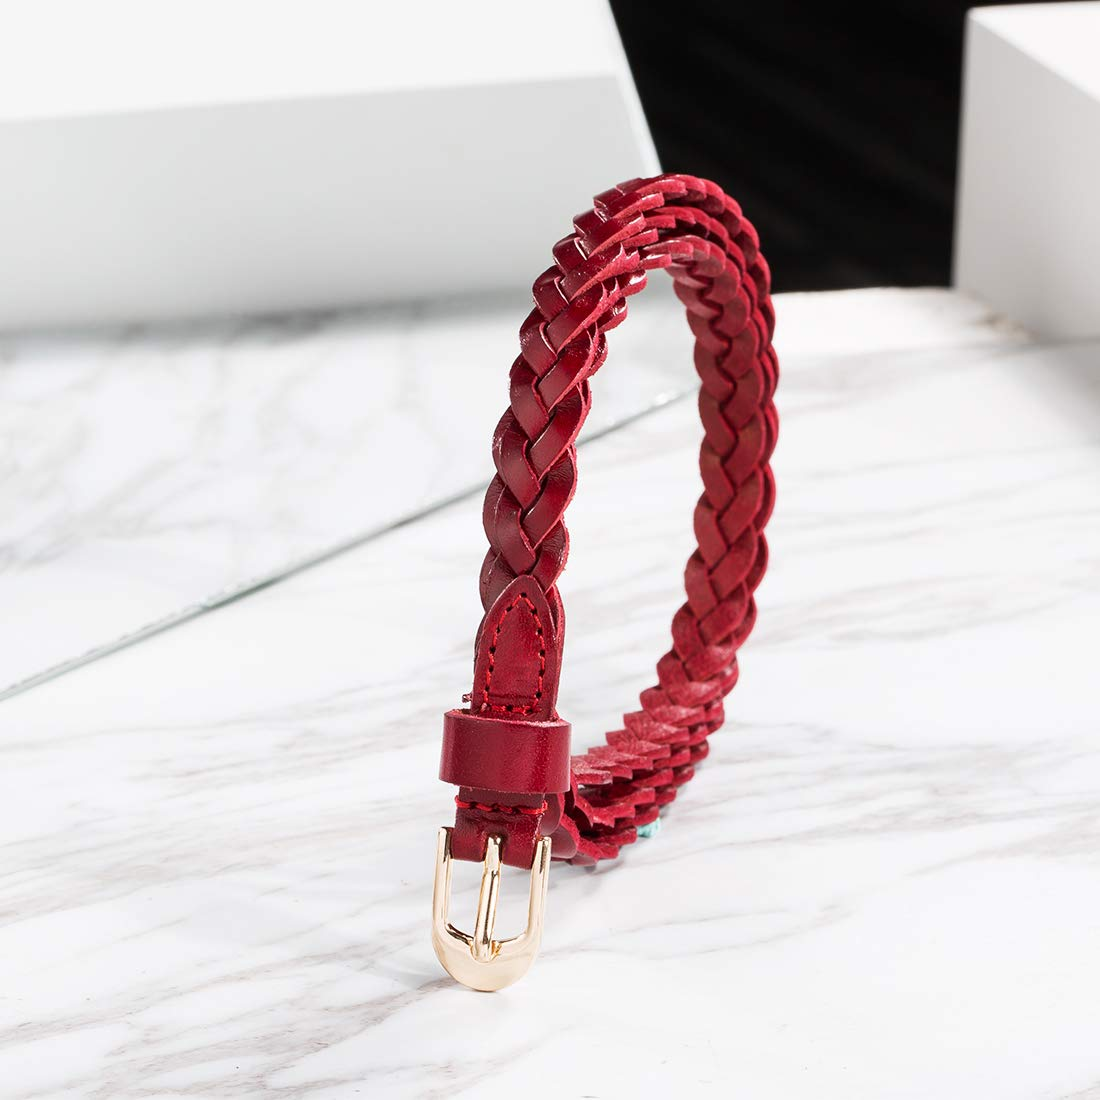 Women Cow Leather Stylish Adjustable Casual Skinny Belts Woven Stretch Braided Red Belts by OMENTAR (Image #6)